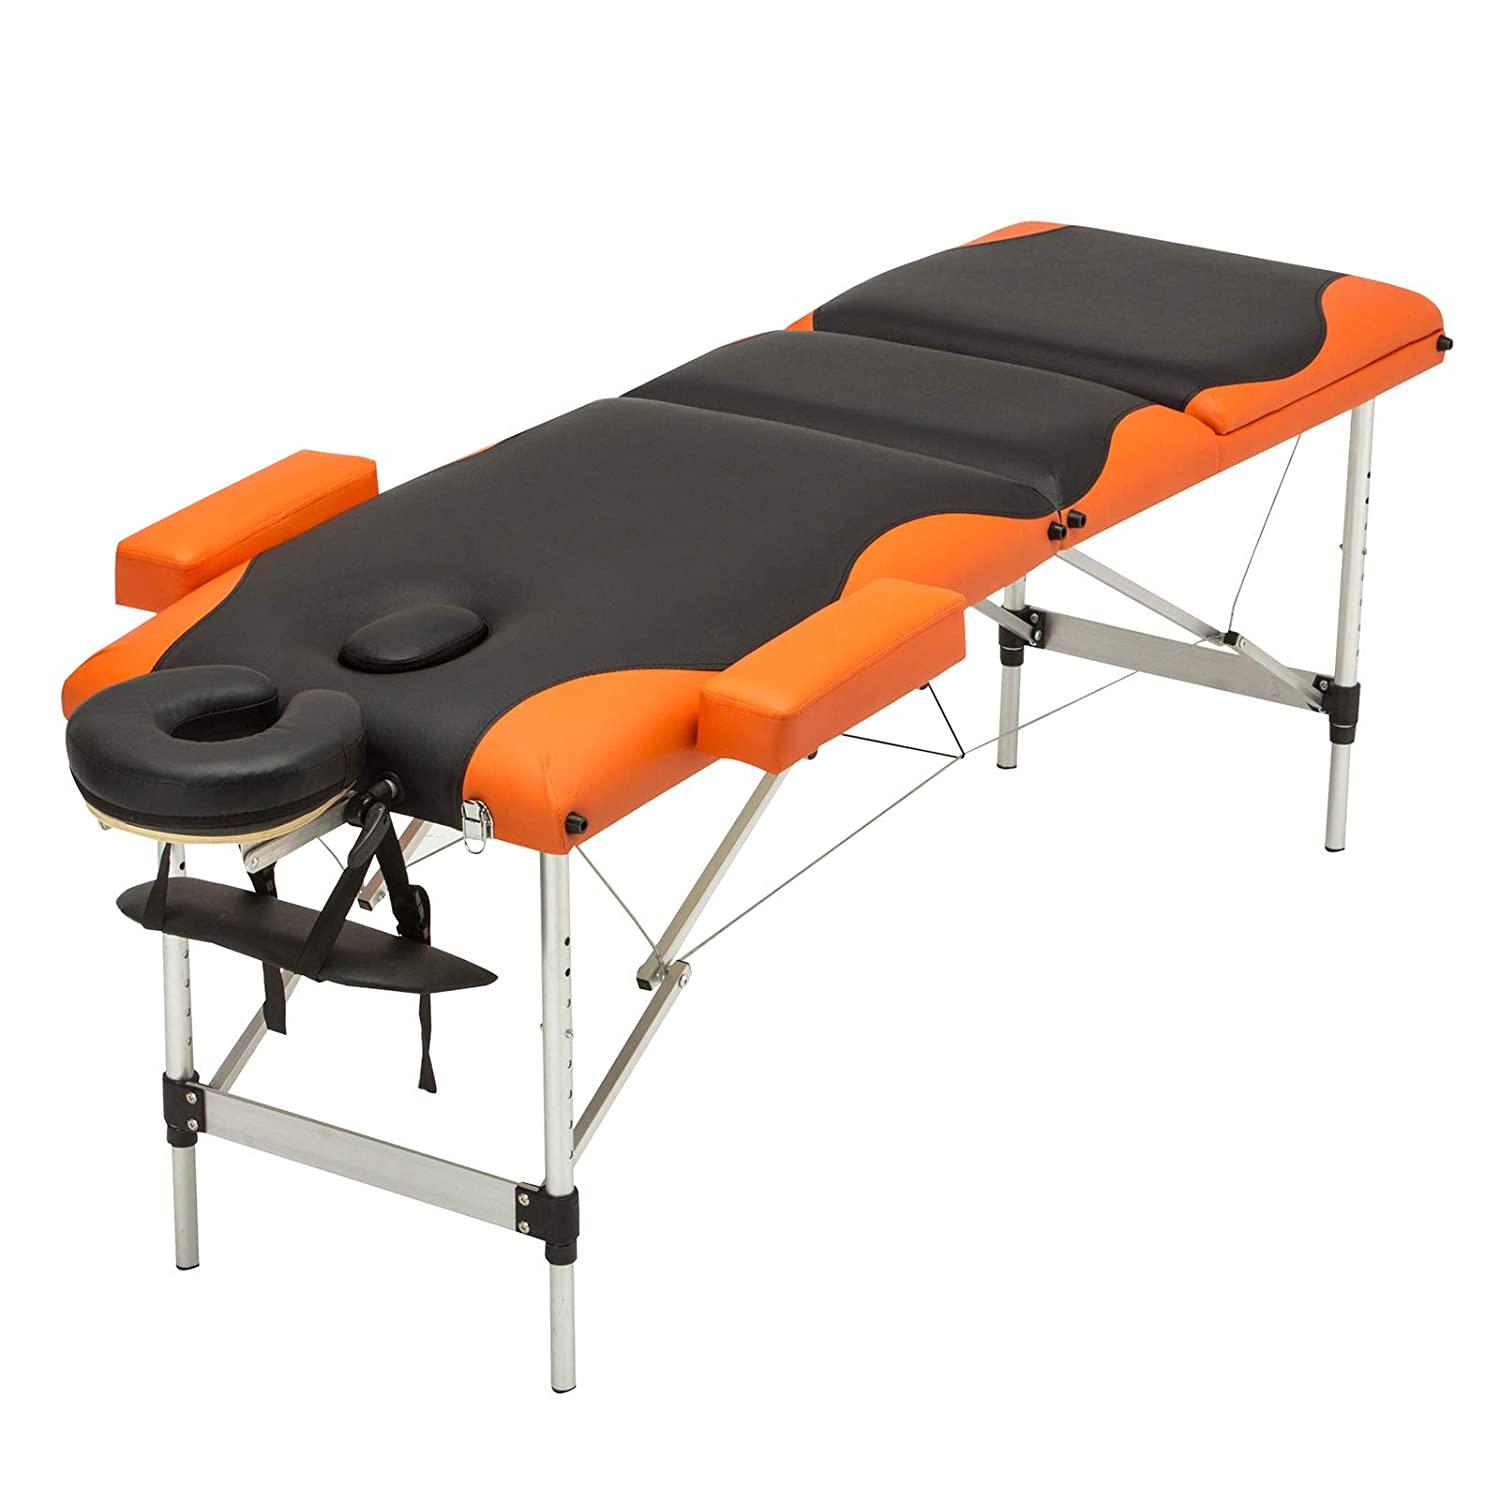 Uenjoy Folding Massage Table 84 Professional Massage Bed Aluminum Frame With Accessories 3 Fold,Black Orange Alu